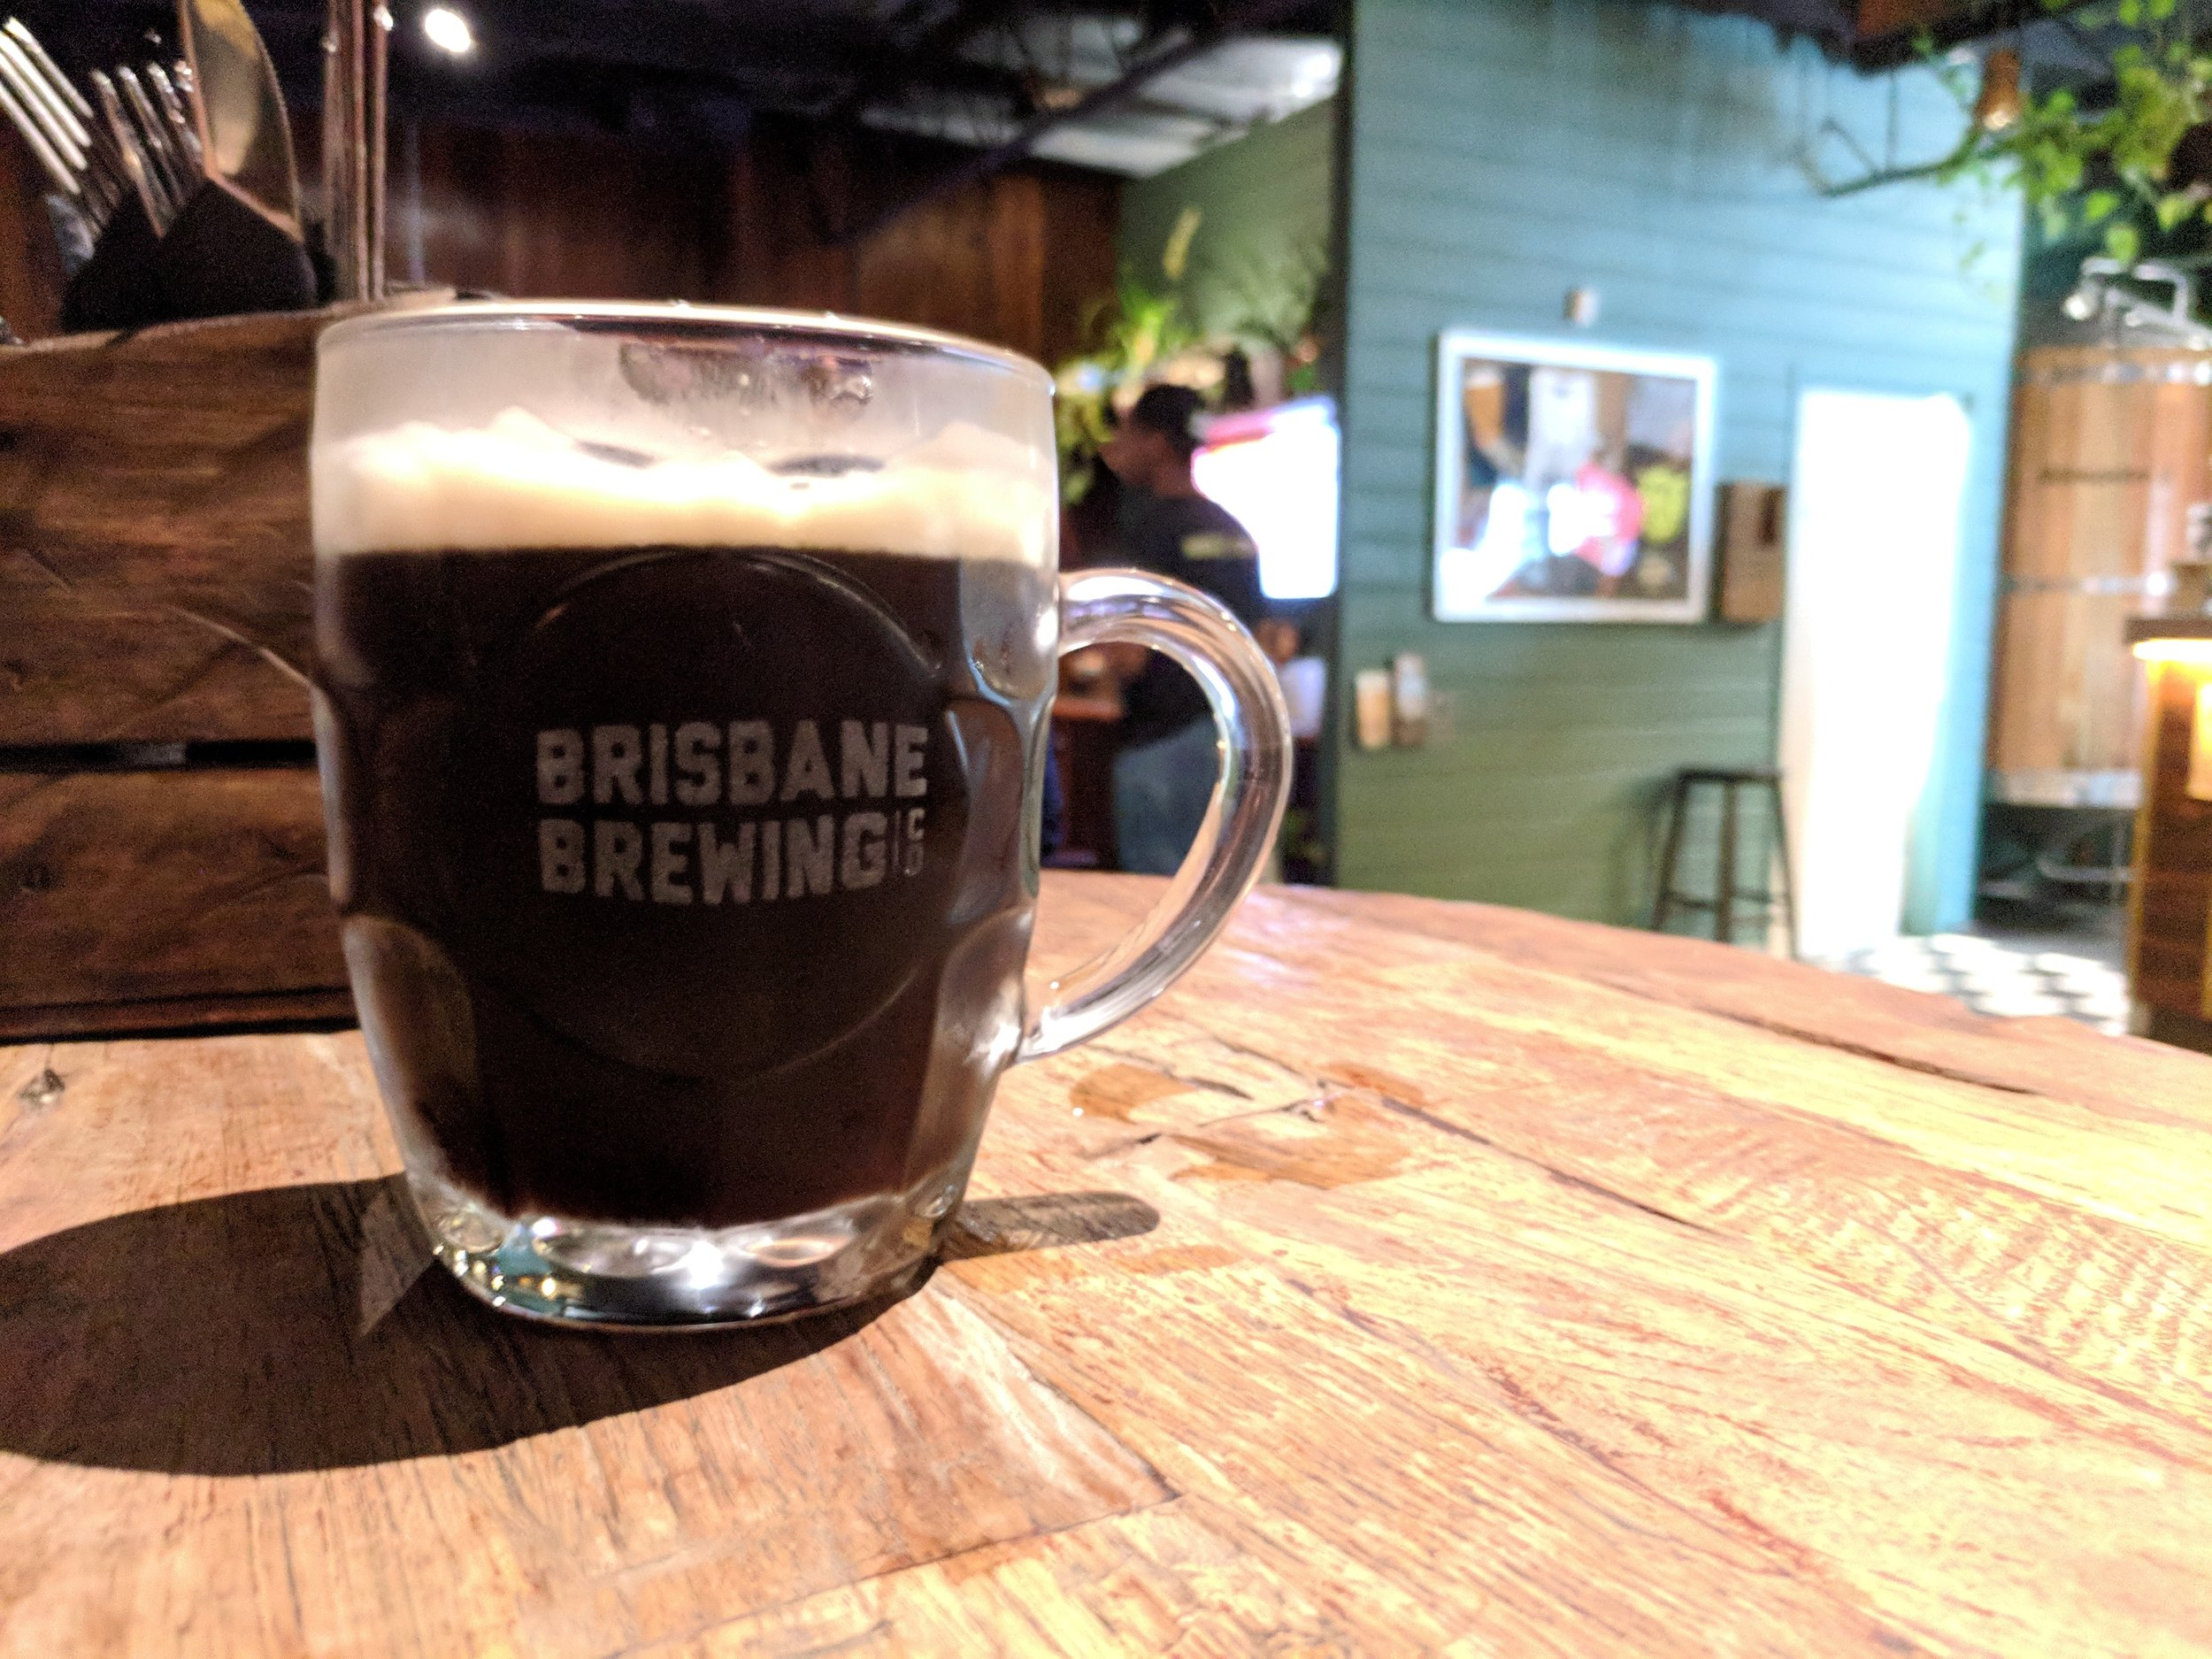 Australians love their beer and their coffee. Photo by  James Cridland .